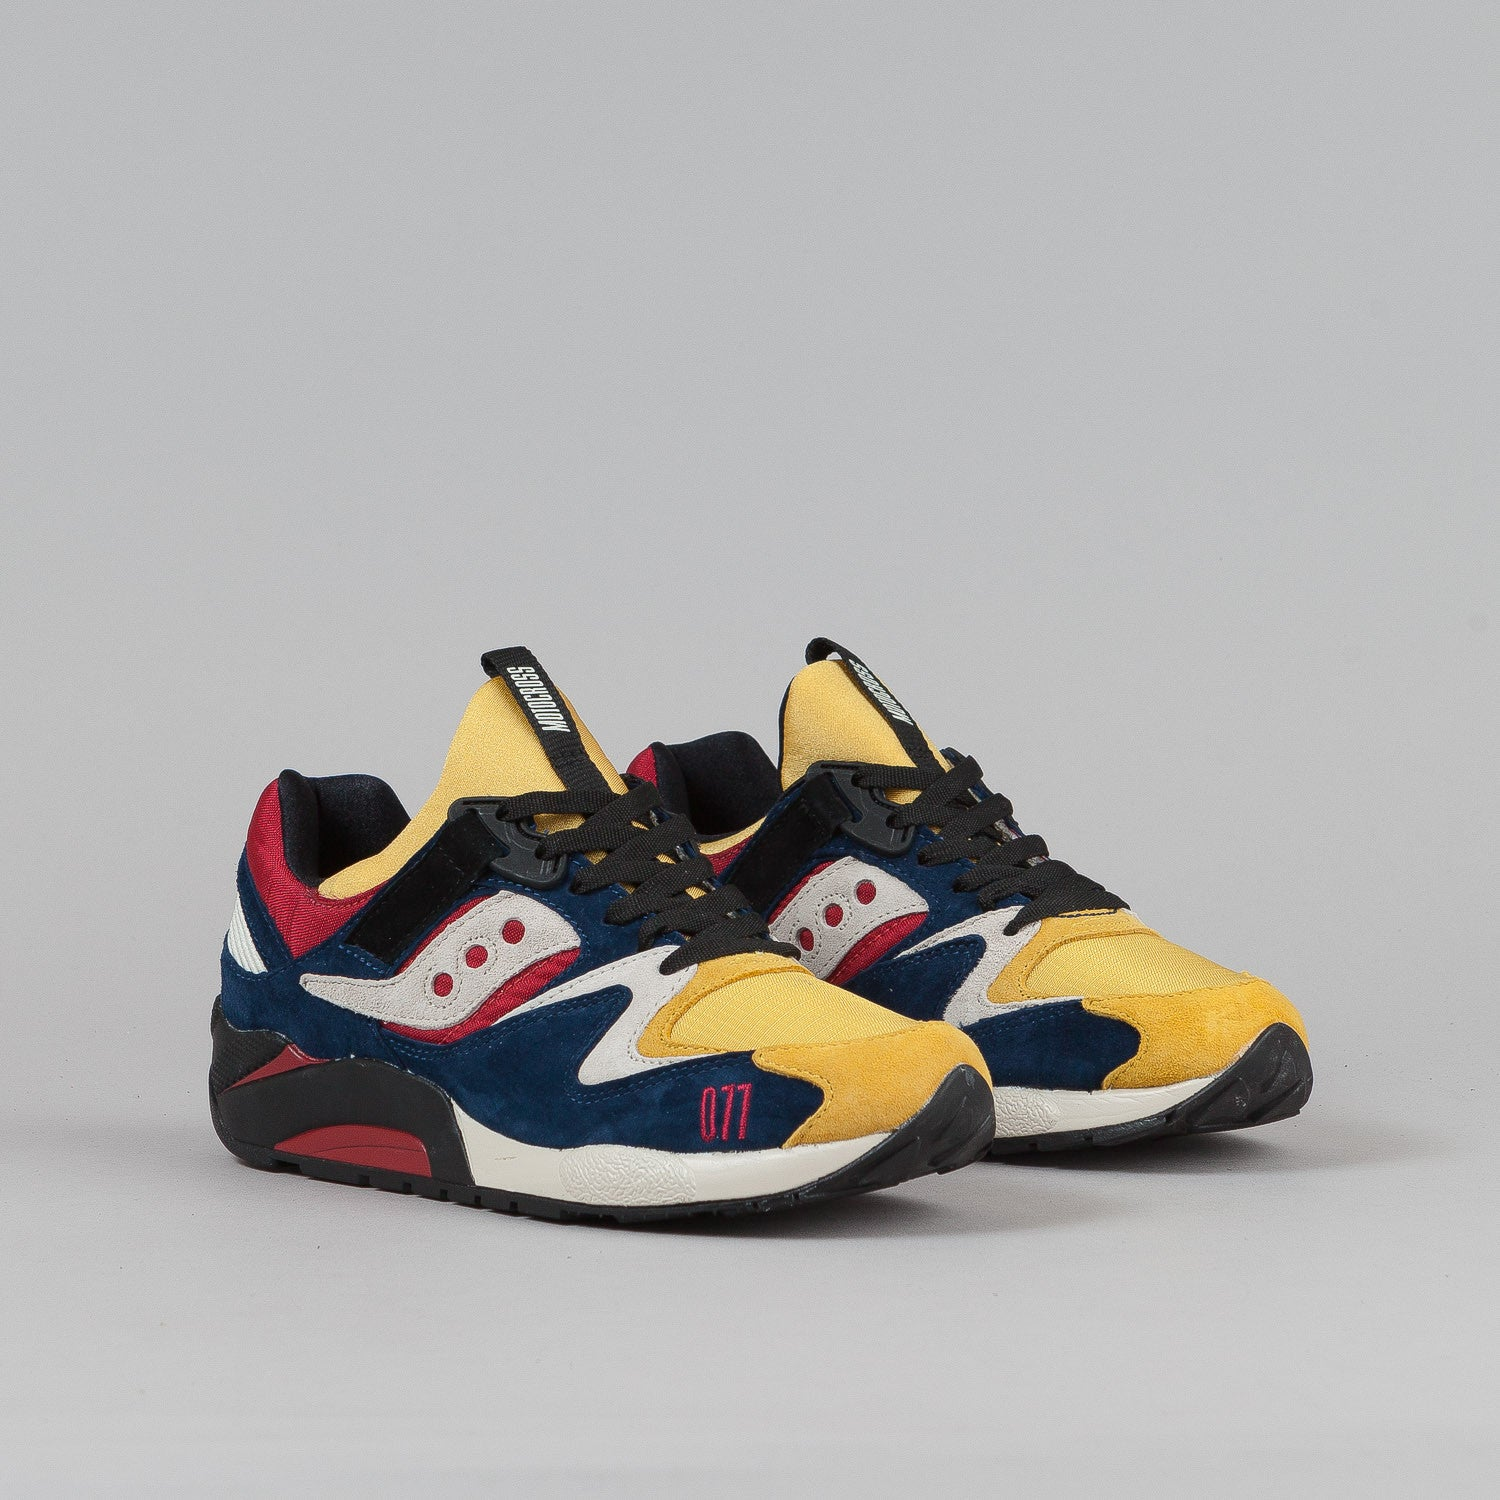 "Saucony X Play Cloths Grid 9000 ""Motocross"""